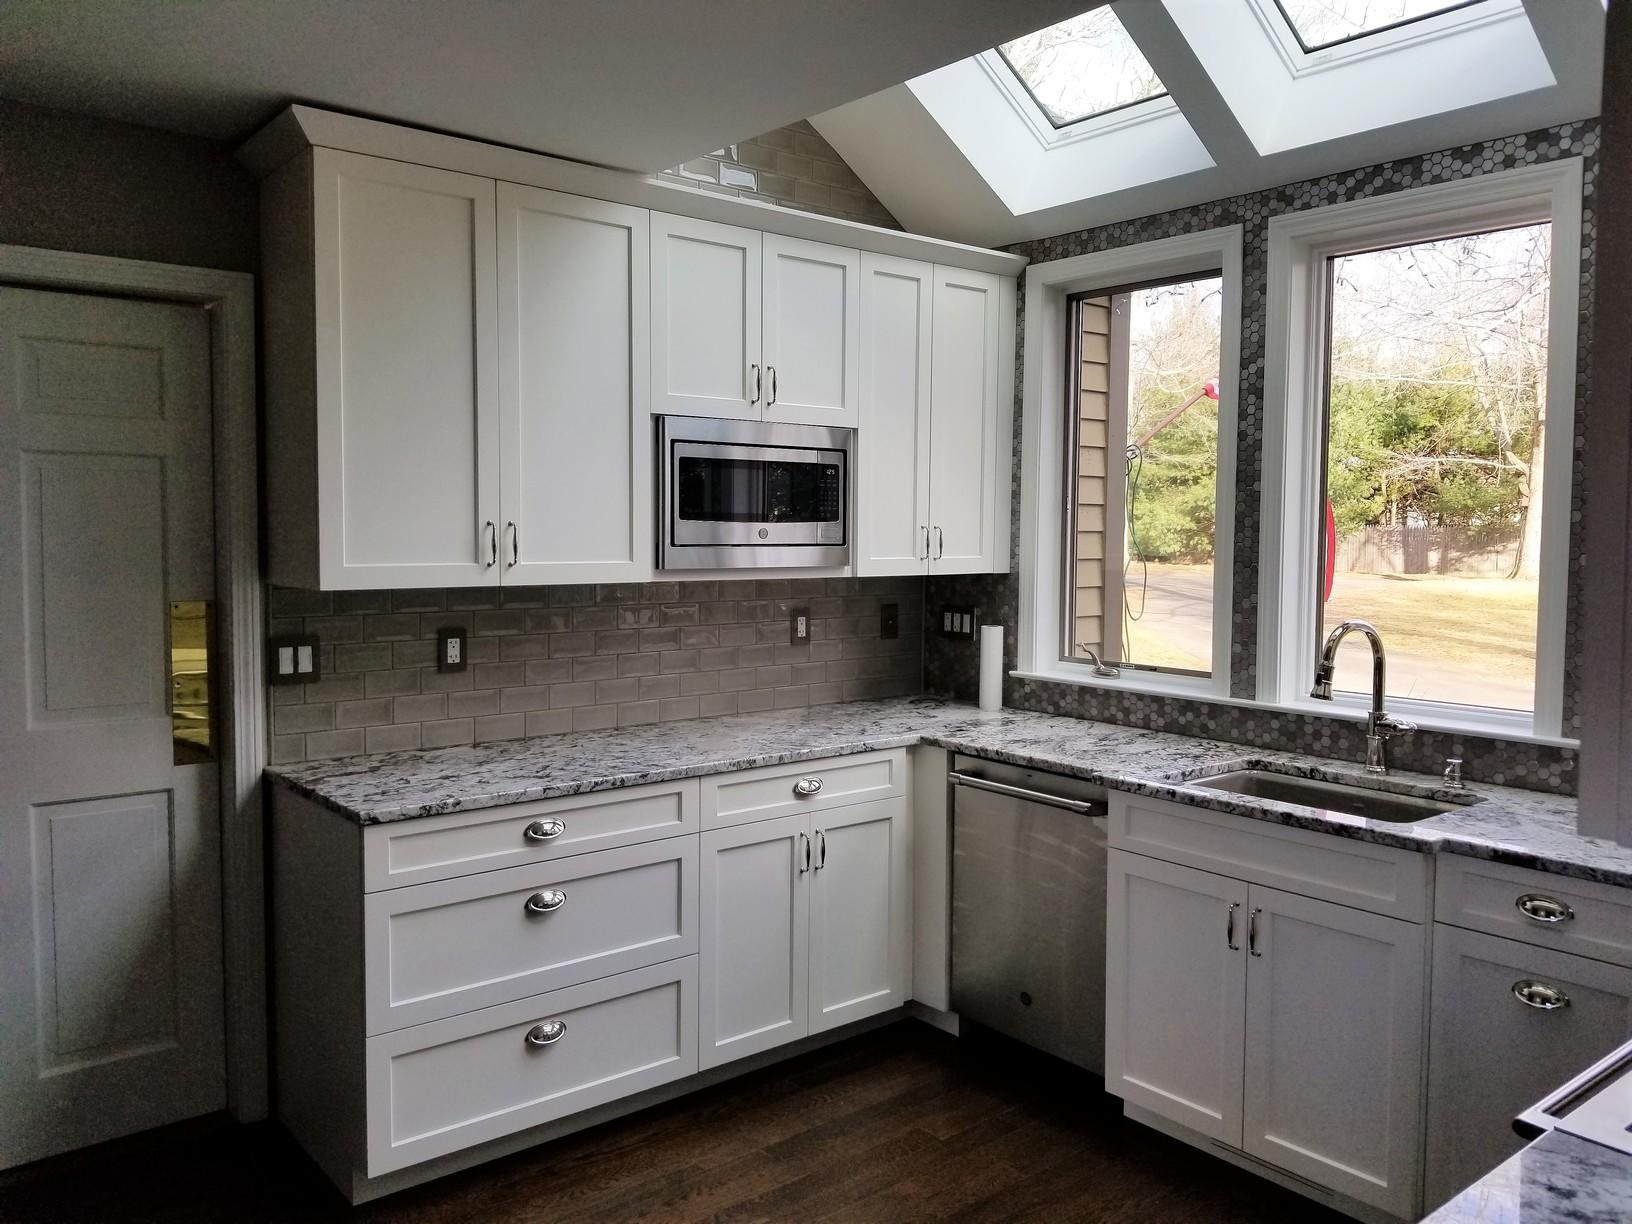 Kitchen Remodeling - Bright and Modern Kitchen Remodel in ...